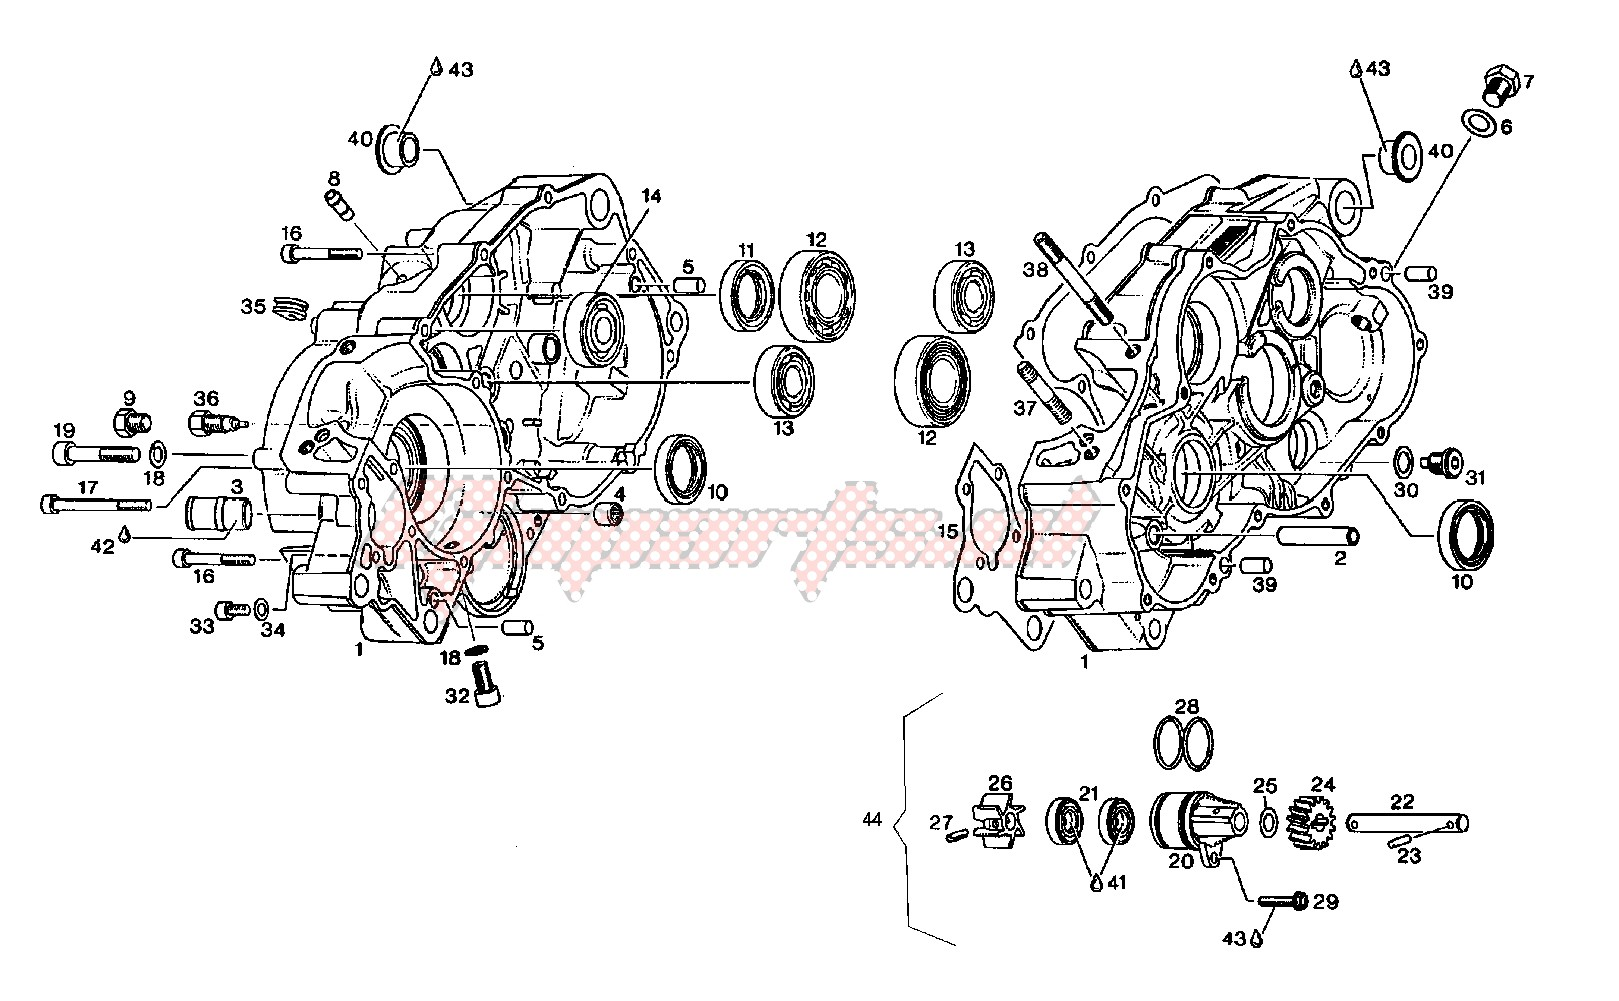 Engine-Crankcase